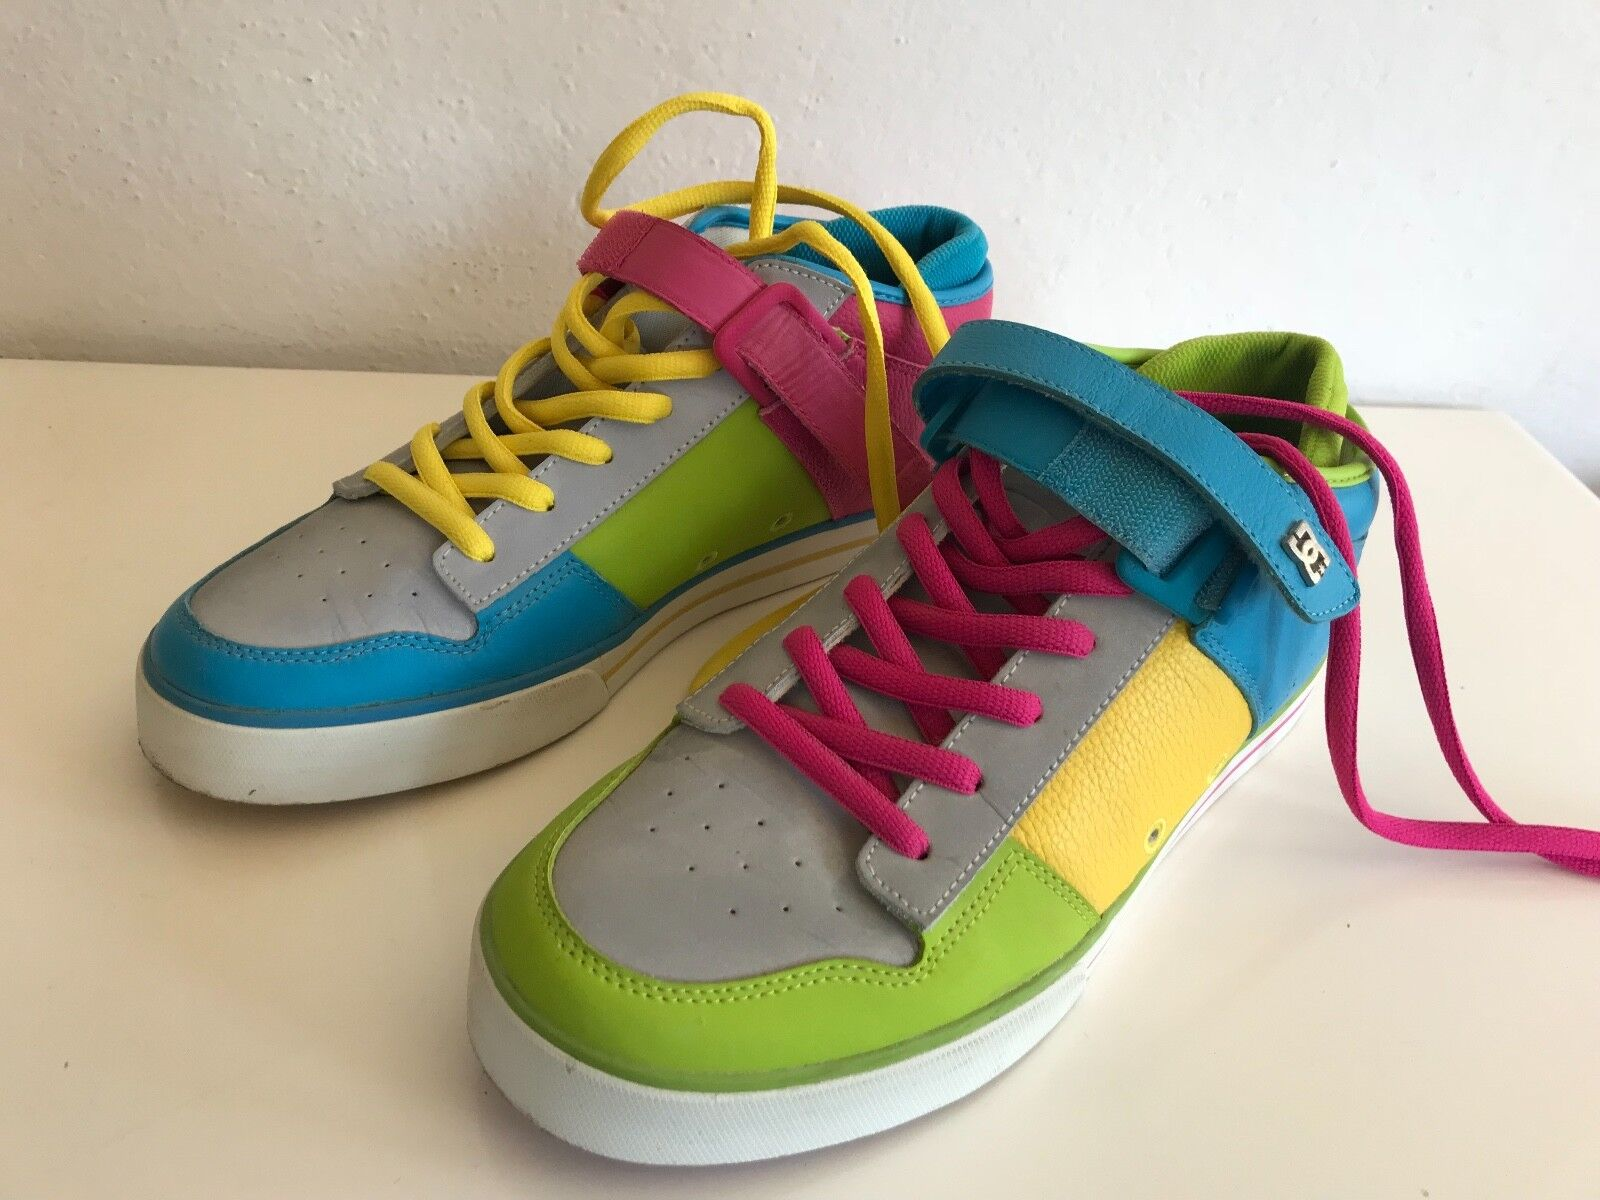 DC SHOES LIMITED X GROOVE ARMADA RARE MODEL VOLCANO 2009 LIMITED SHOES EDITION SKATER INDIE 58881b